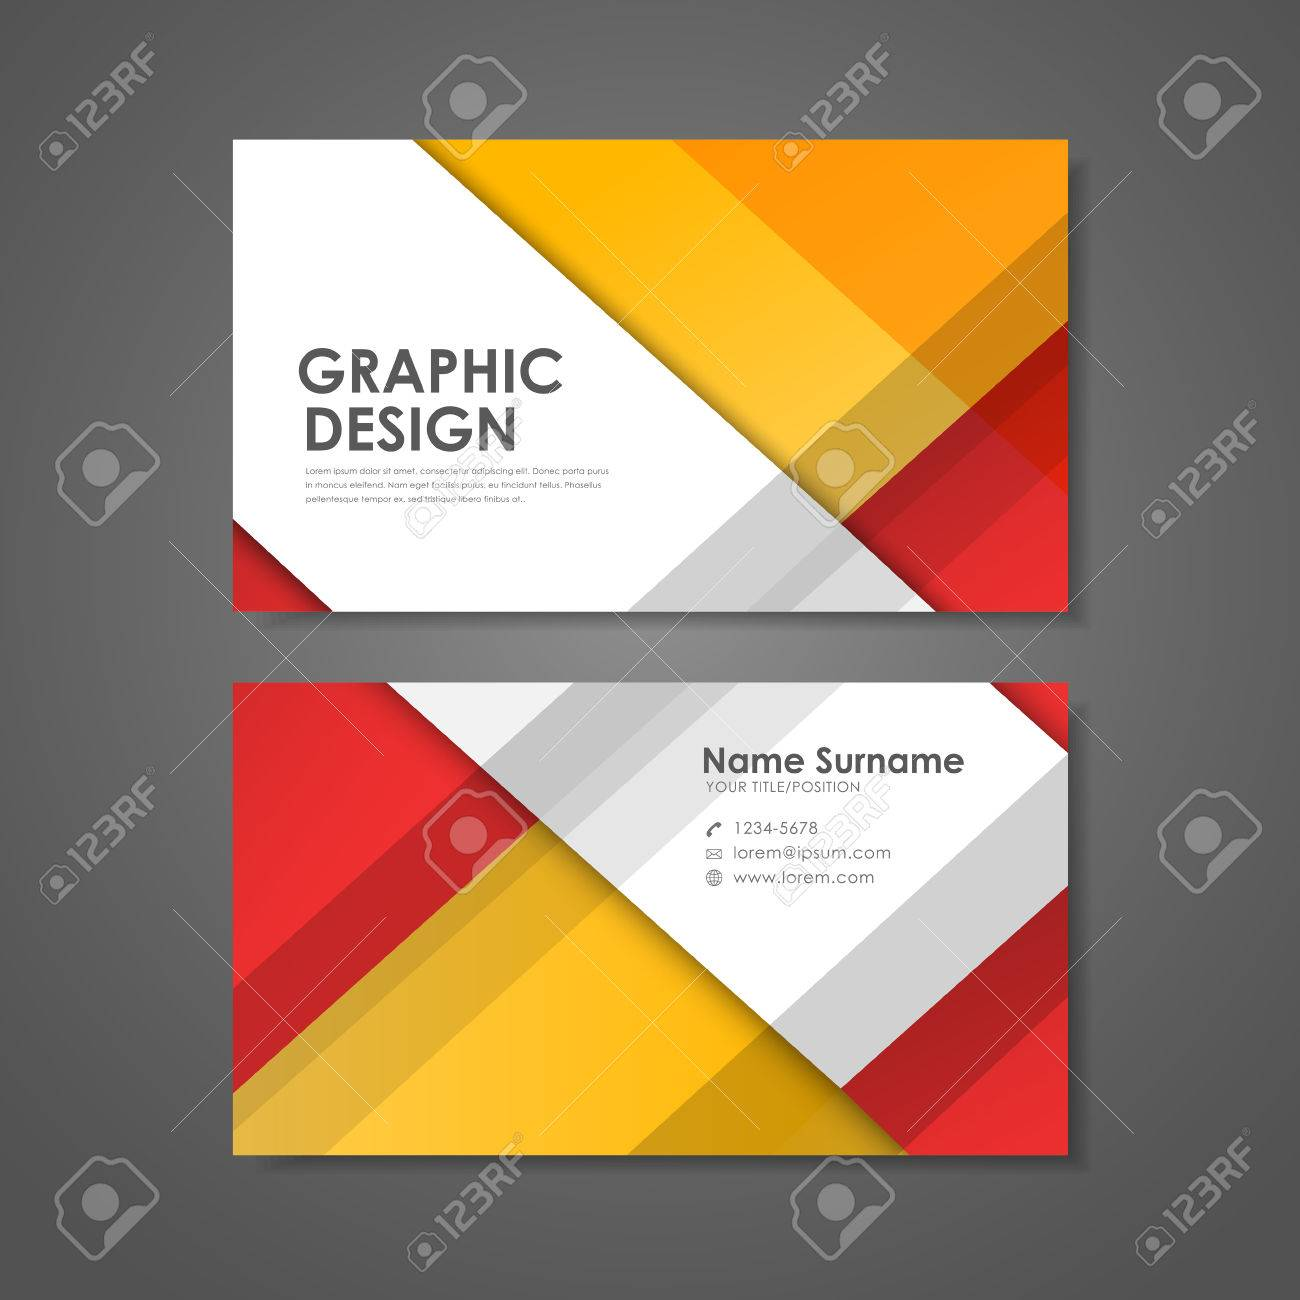 Abstract Creative Business Card Template In Red And Orange Royalty - Creative business card templates